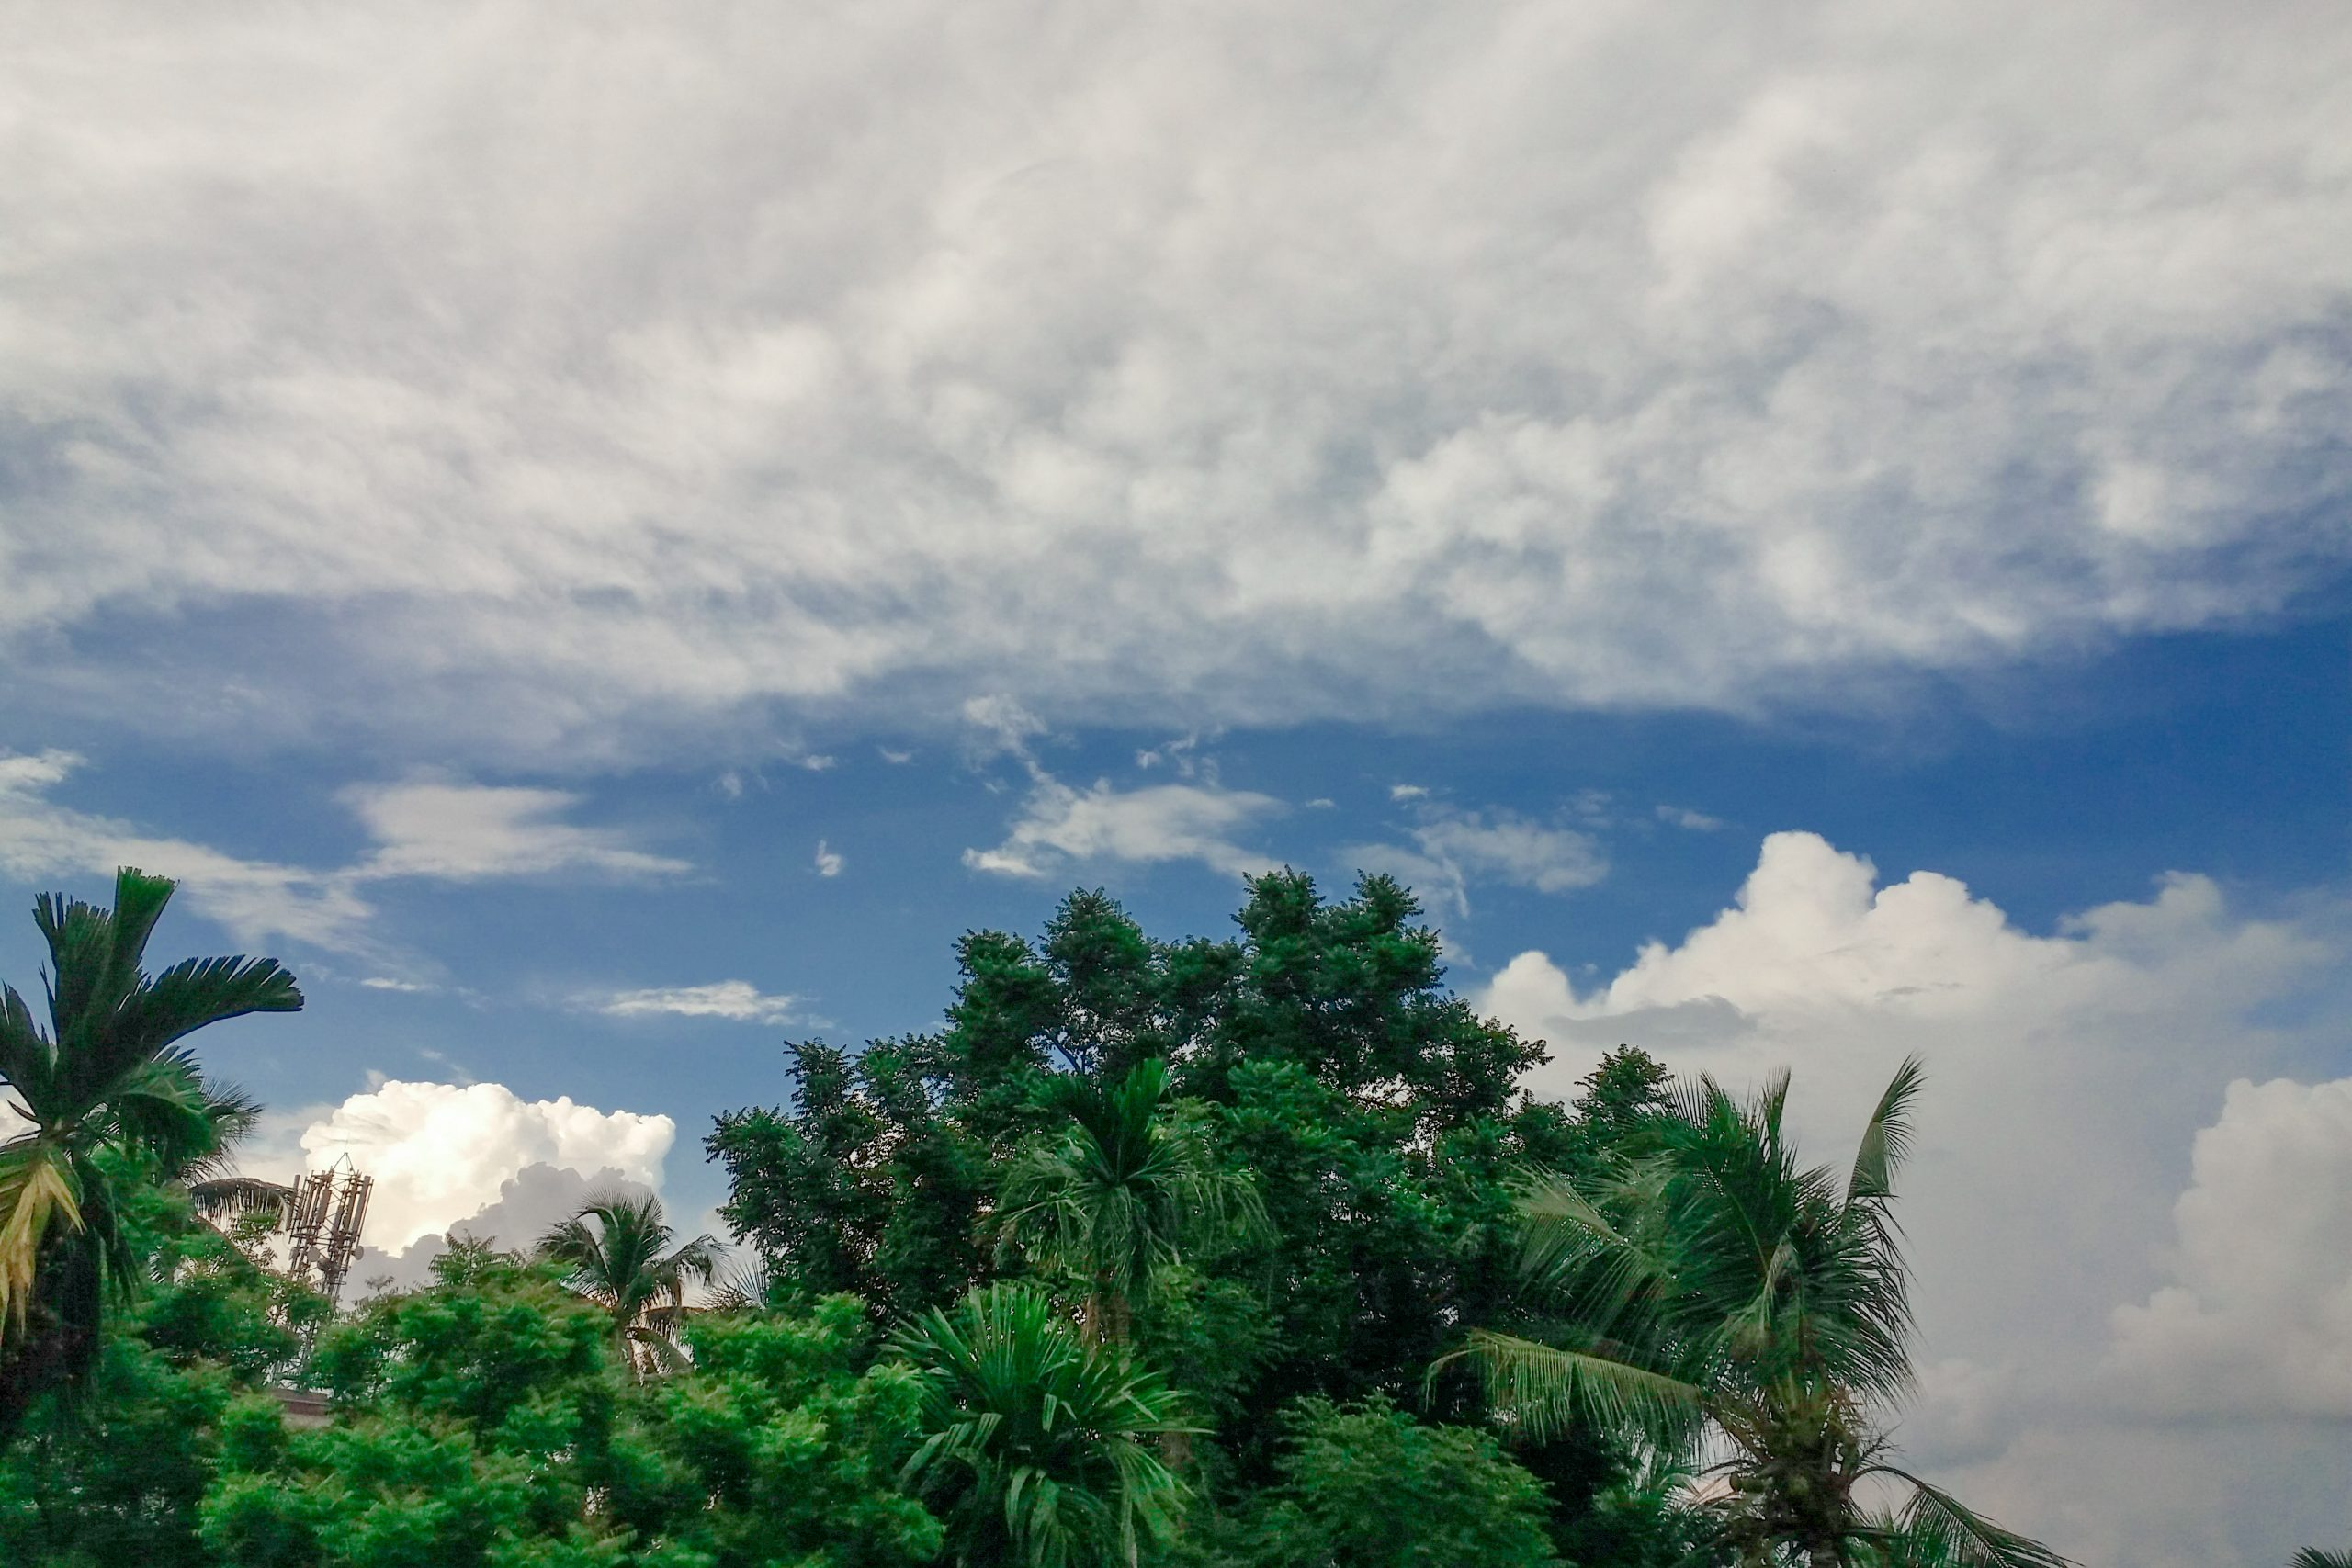 Clouds over palm trees